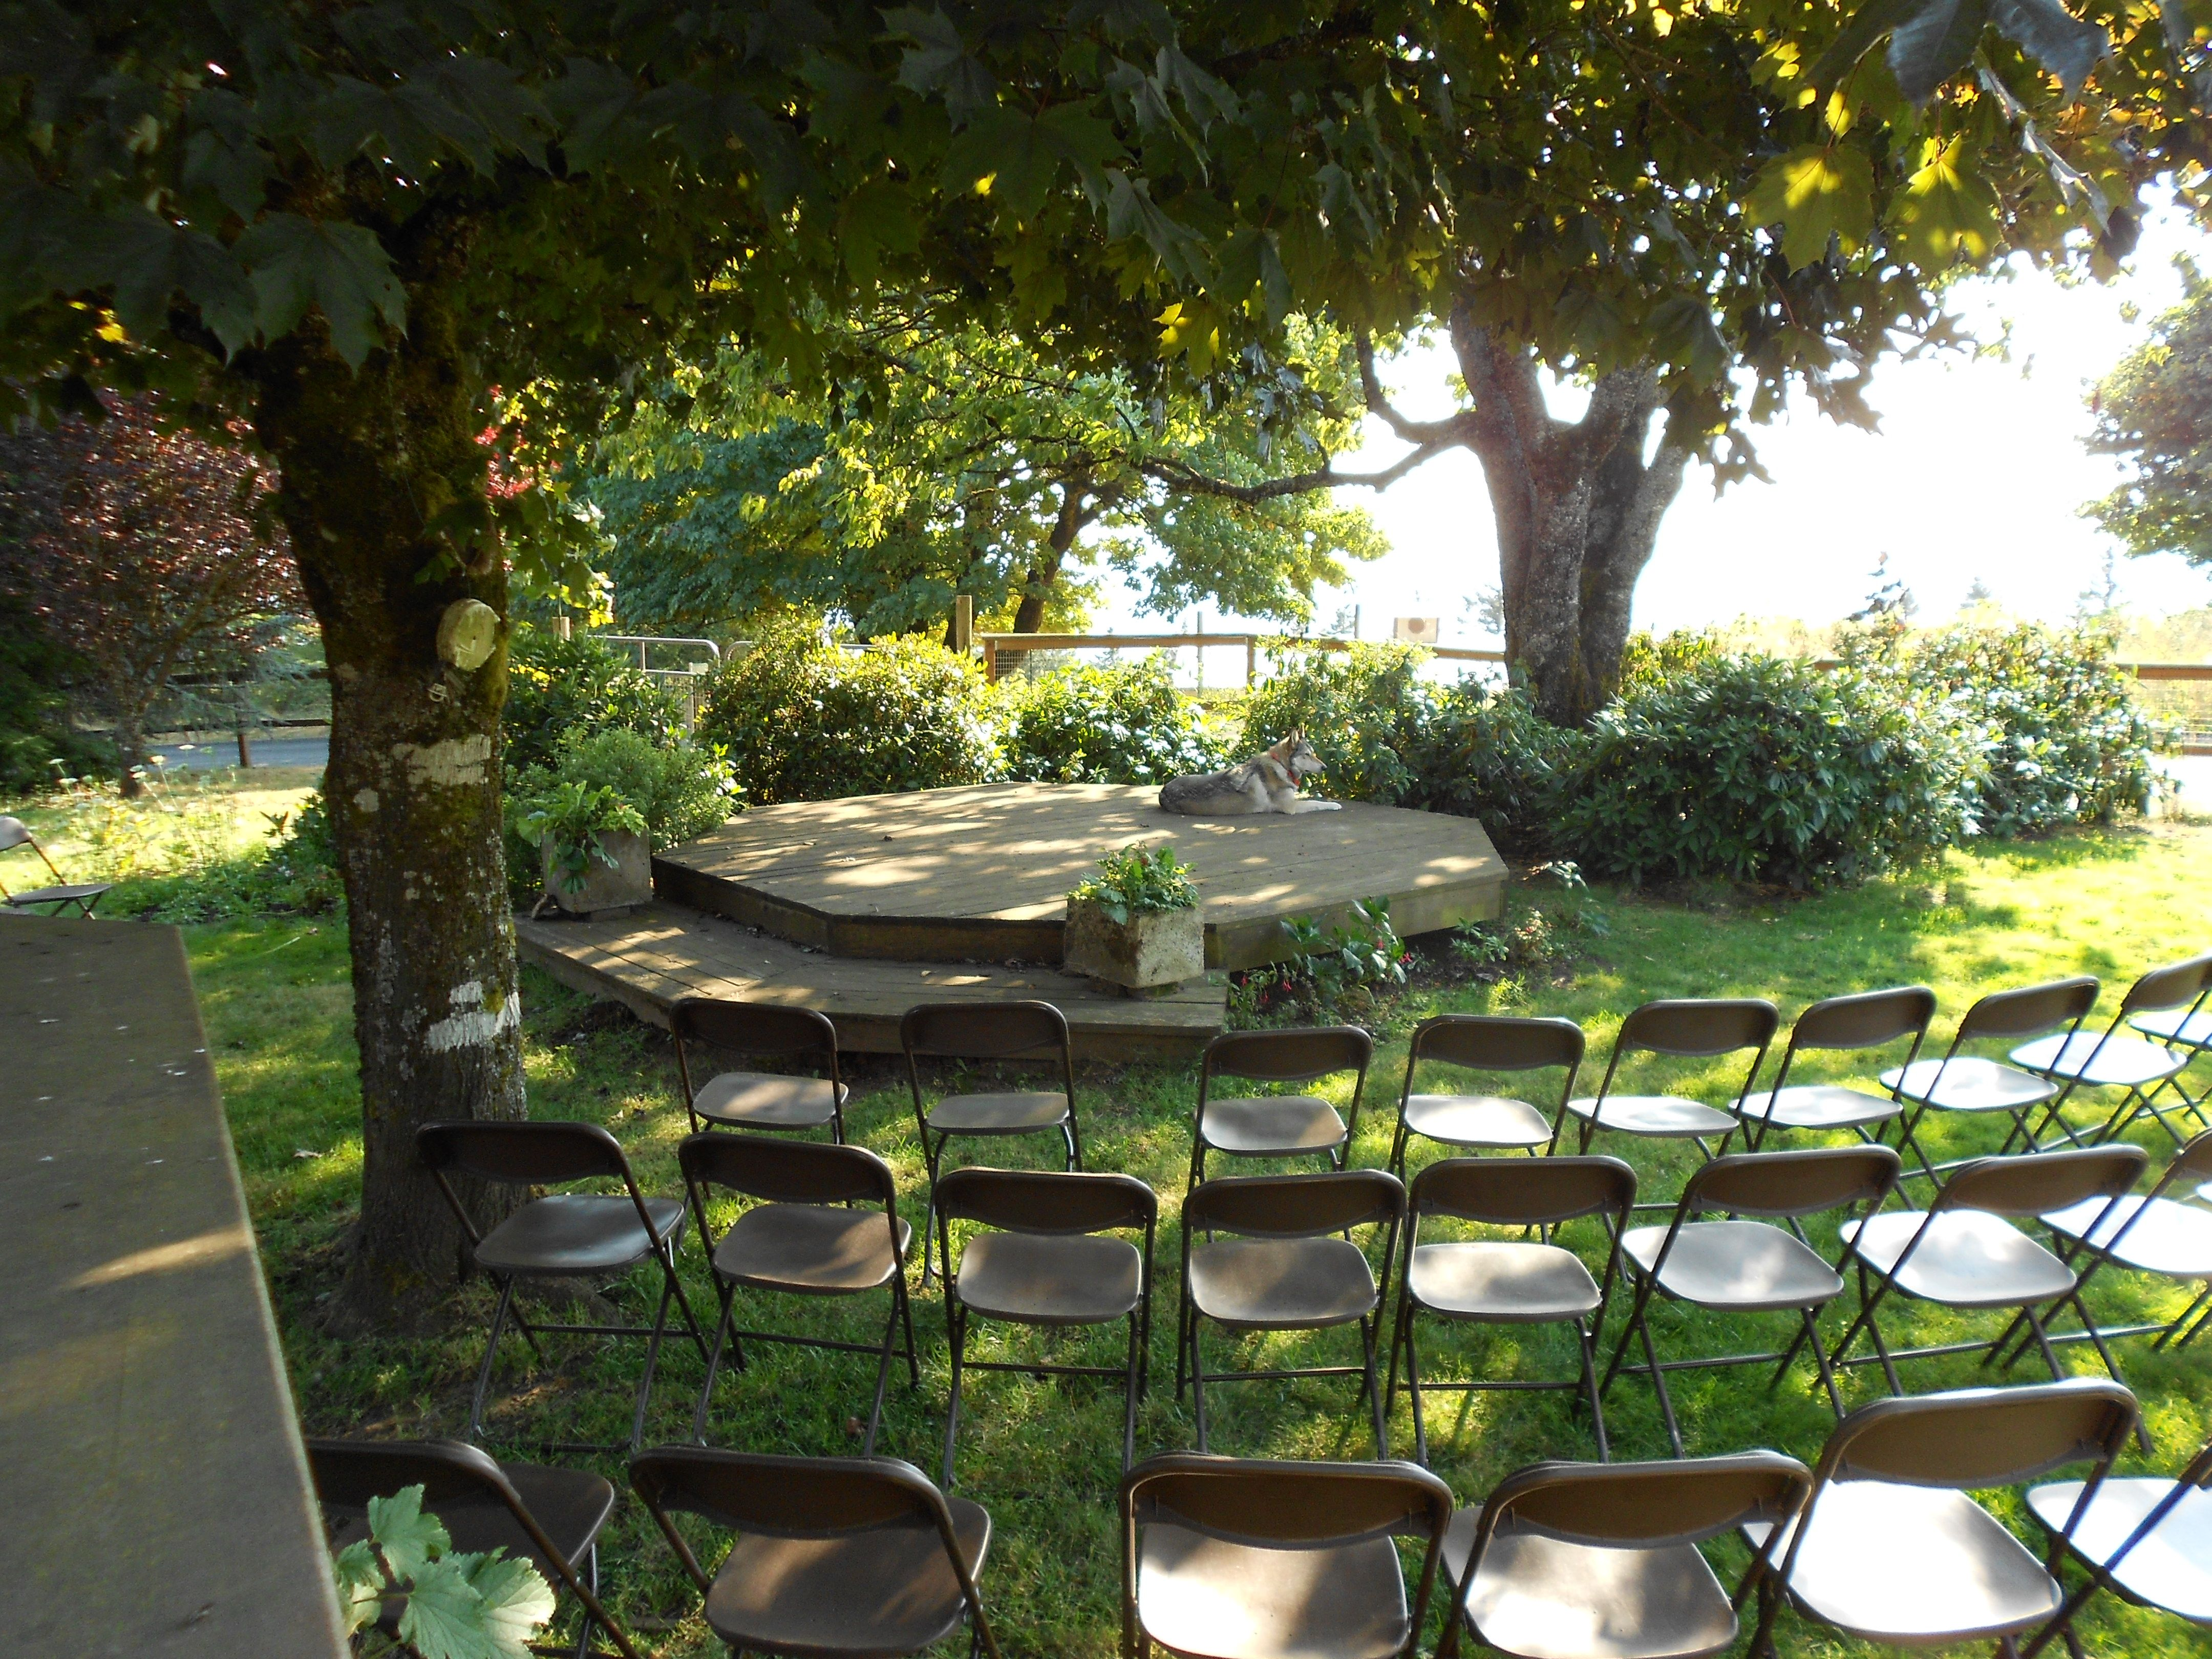 outdoor ceremony - next pic will show the view | Outdoor ...